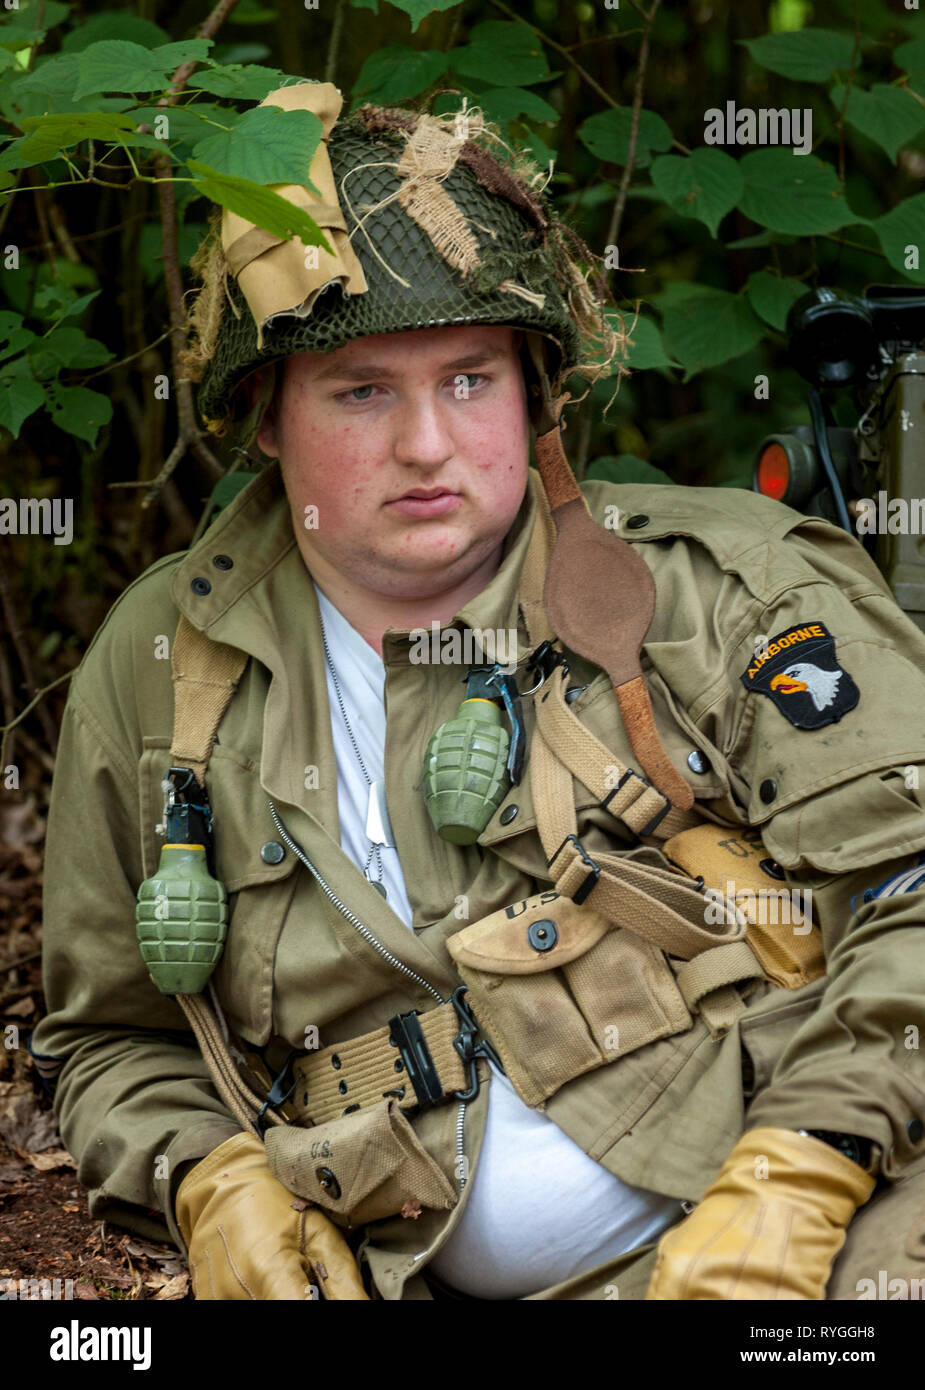 Woodhall Spa 1940s Festival - portrait of an American soldier from 82 Airborne Diviasion of World War 2 Stock Photo